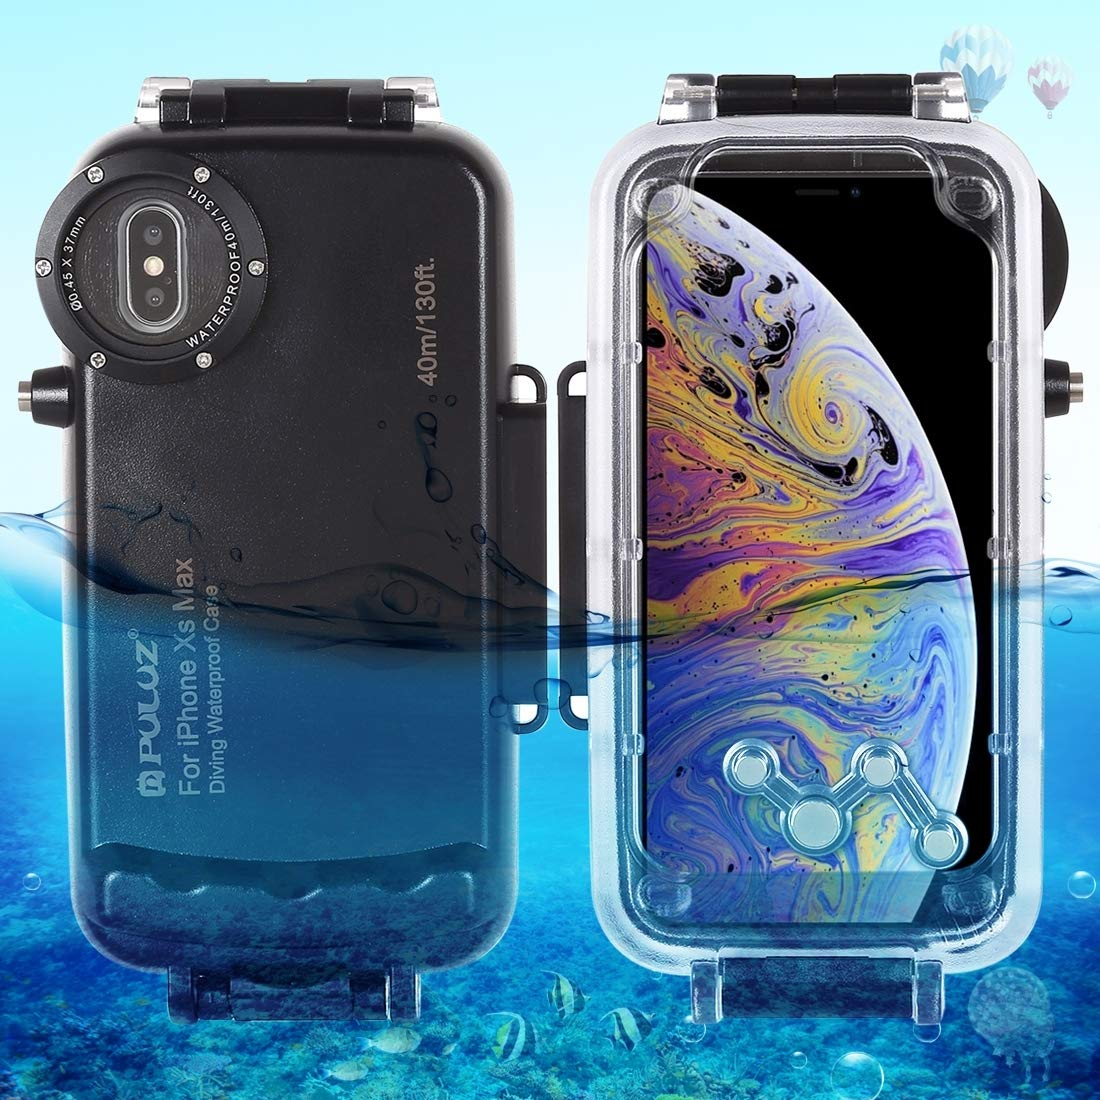 Naozbuyrig iPhone Xs Max Dry Bag Case, PULUZ 40m/130ft Waterproof Diving Housing Photo Video Taking Underwater Cover Case for iPhone Xs Max (Color : Black)